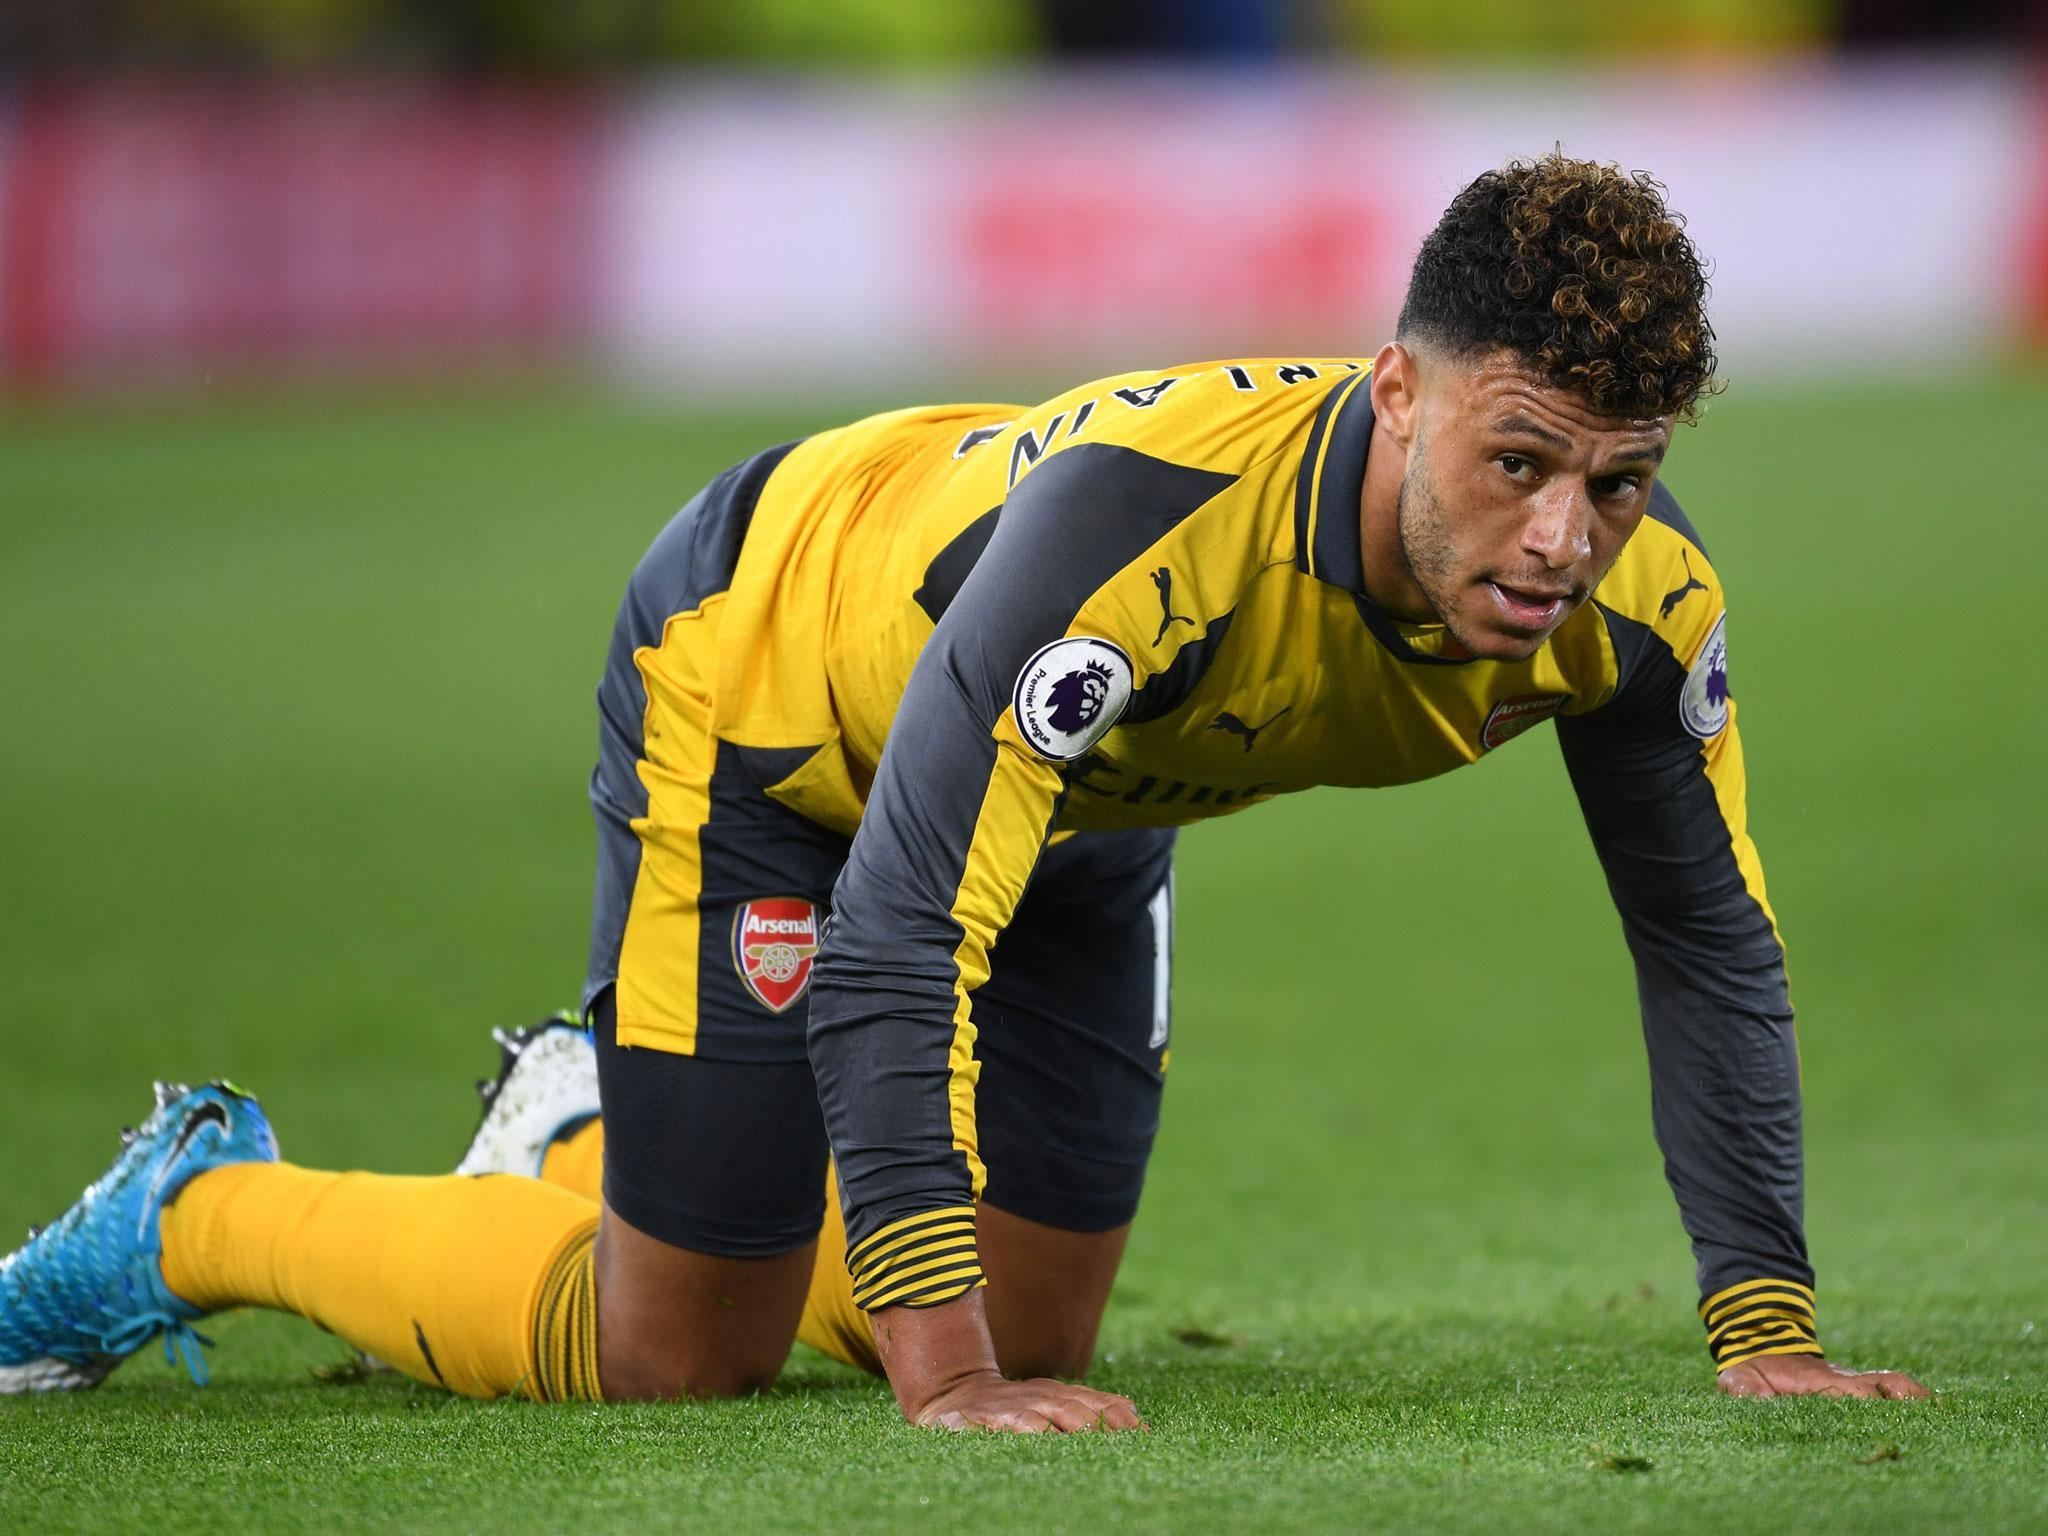 Arsenal ready to sell £25m Alex Oxlade-Chamberlain to Liverpool with eight set to follow him out the Gunners exit door